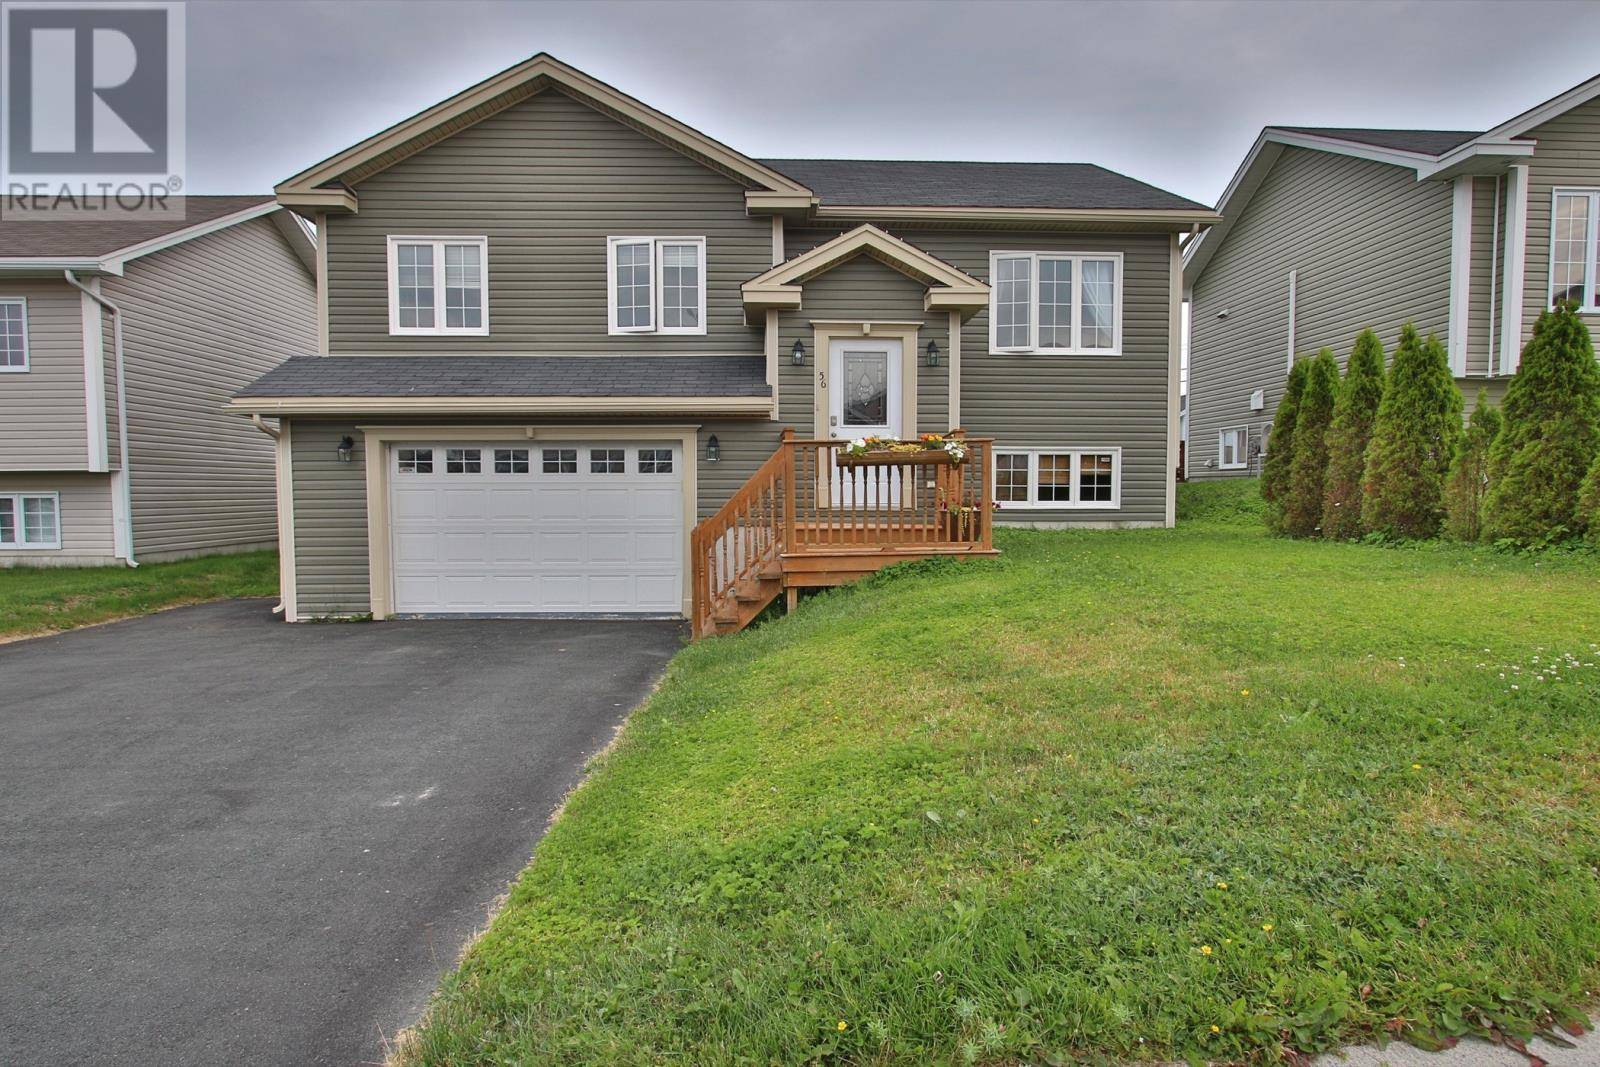 House for sale at 56 Pleasantview Ave Paradise Newfoundland - MLS: 1200220